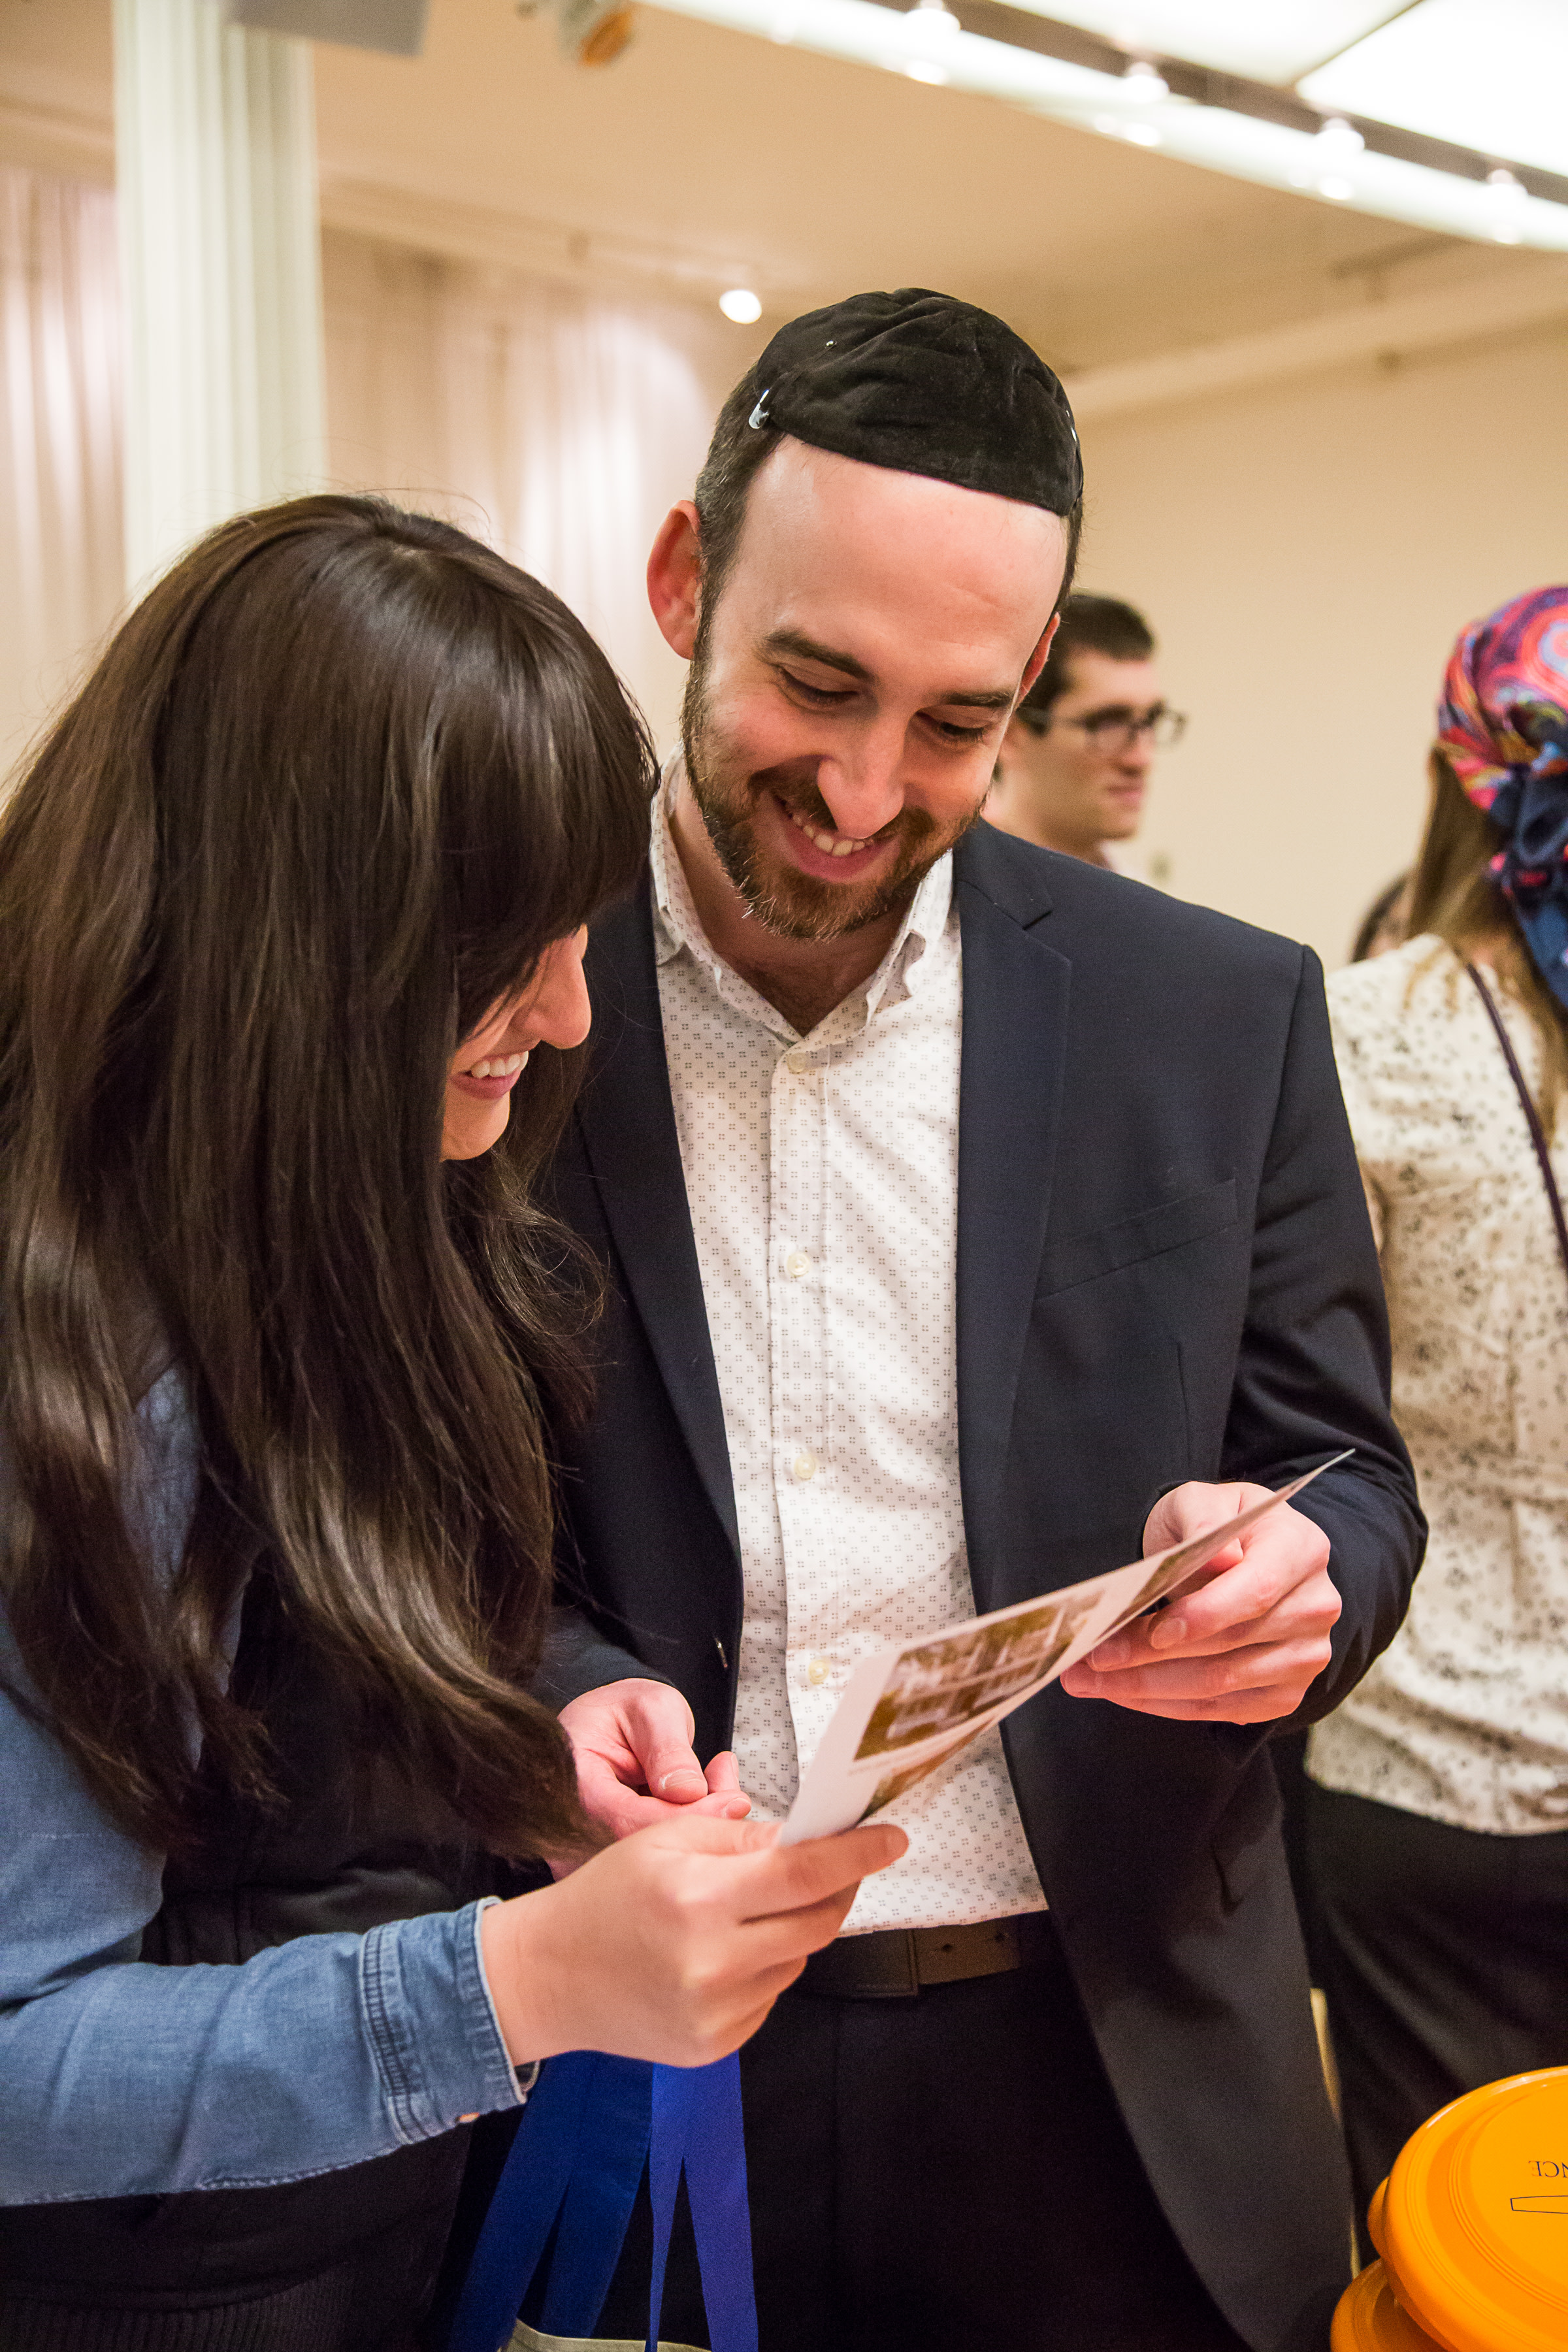 Thousands of Orthodox Jews Exploring Options Outside NY